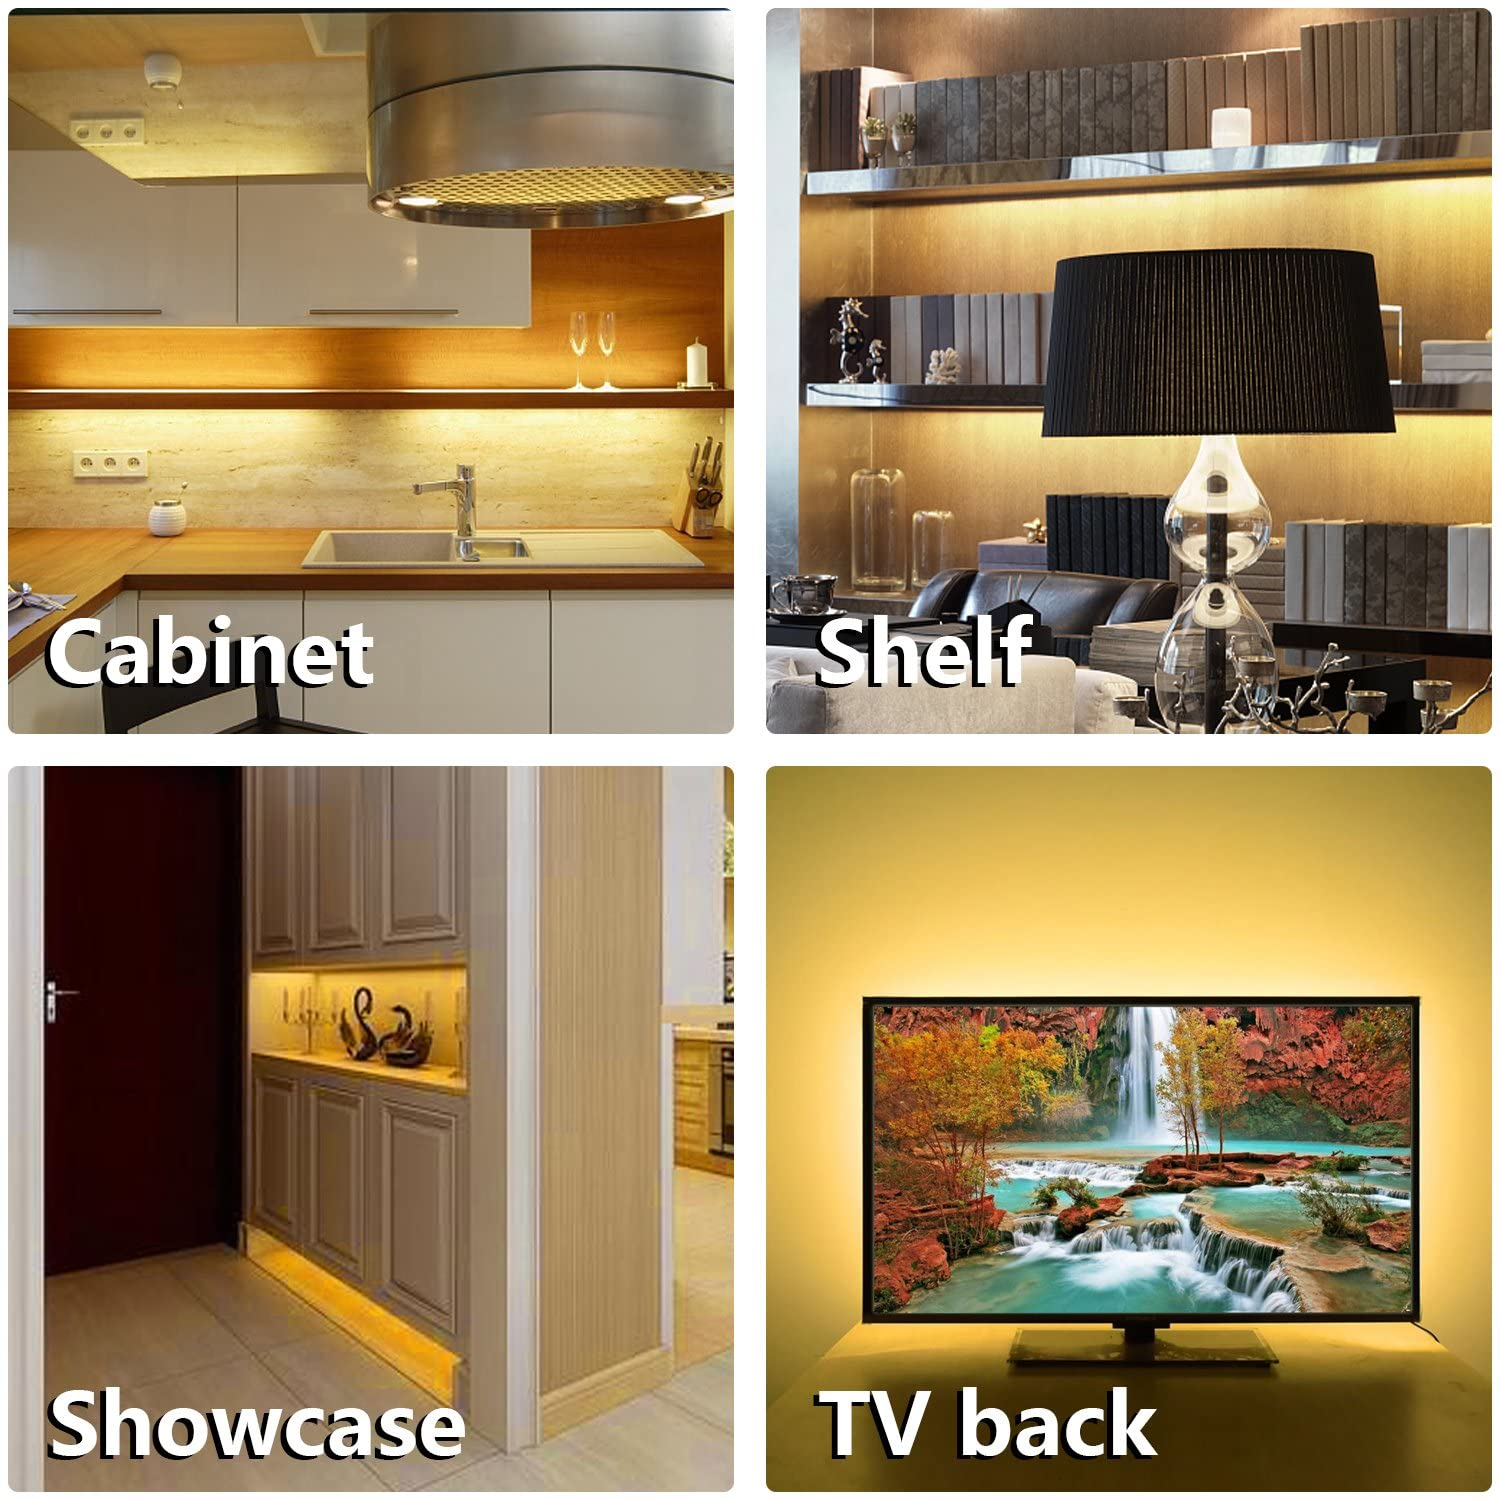 Dimmable for Kitchen Cabinet,Counter,Shelf,TV Back,Showcase 2700K Warm White Timing Bright Under Cabinet LED Lighting kit 6 PCS LED Strip Lights with Remote Control Dimmer and Adapter